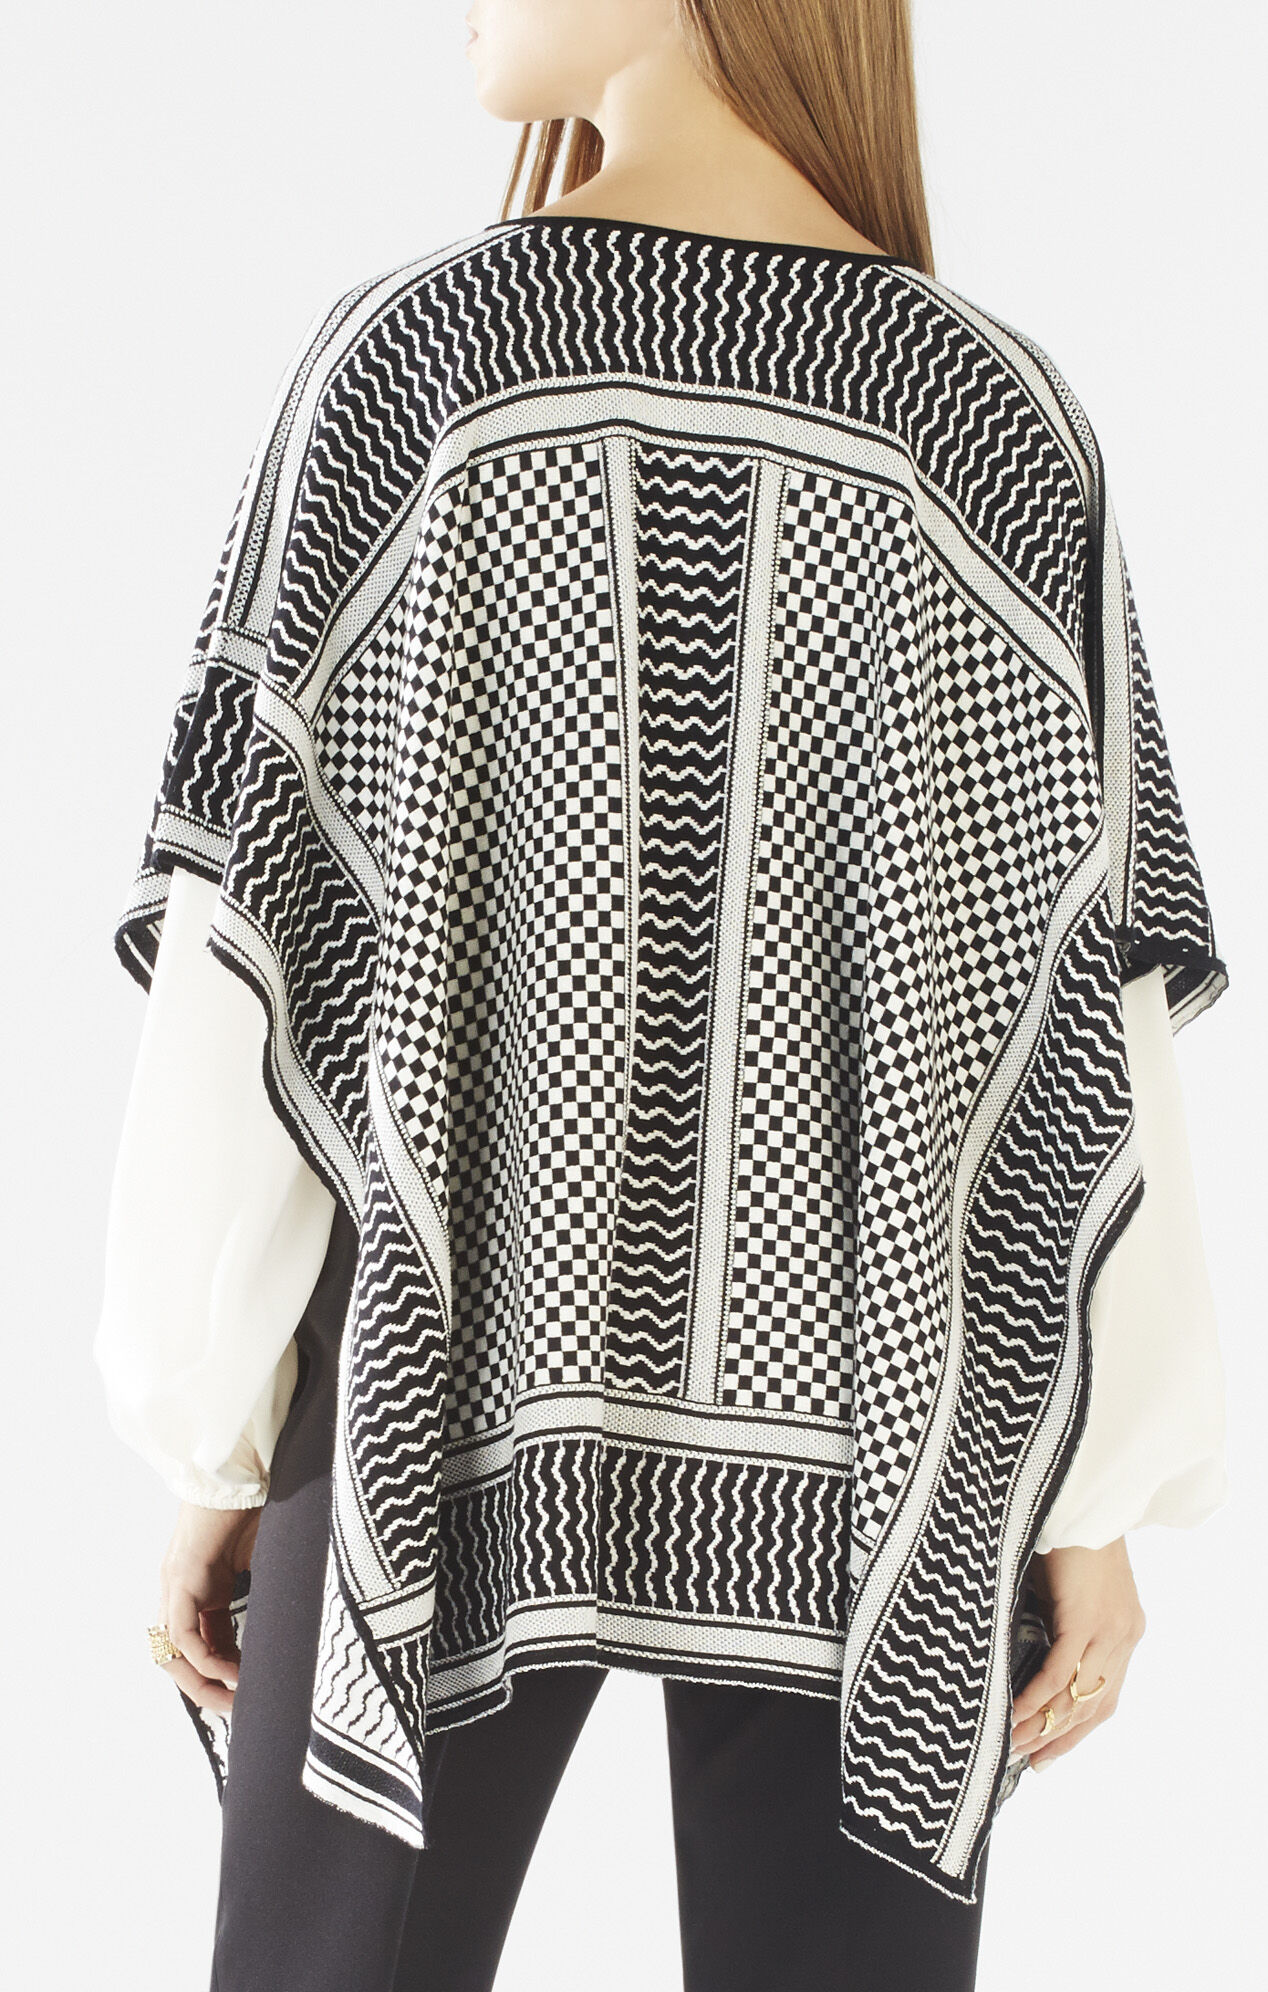 With a high neck and cable knit designs, this poncho sweater is perfect for the holiday season.